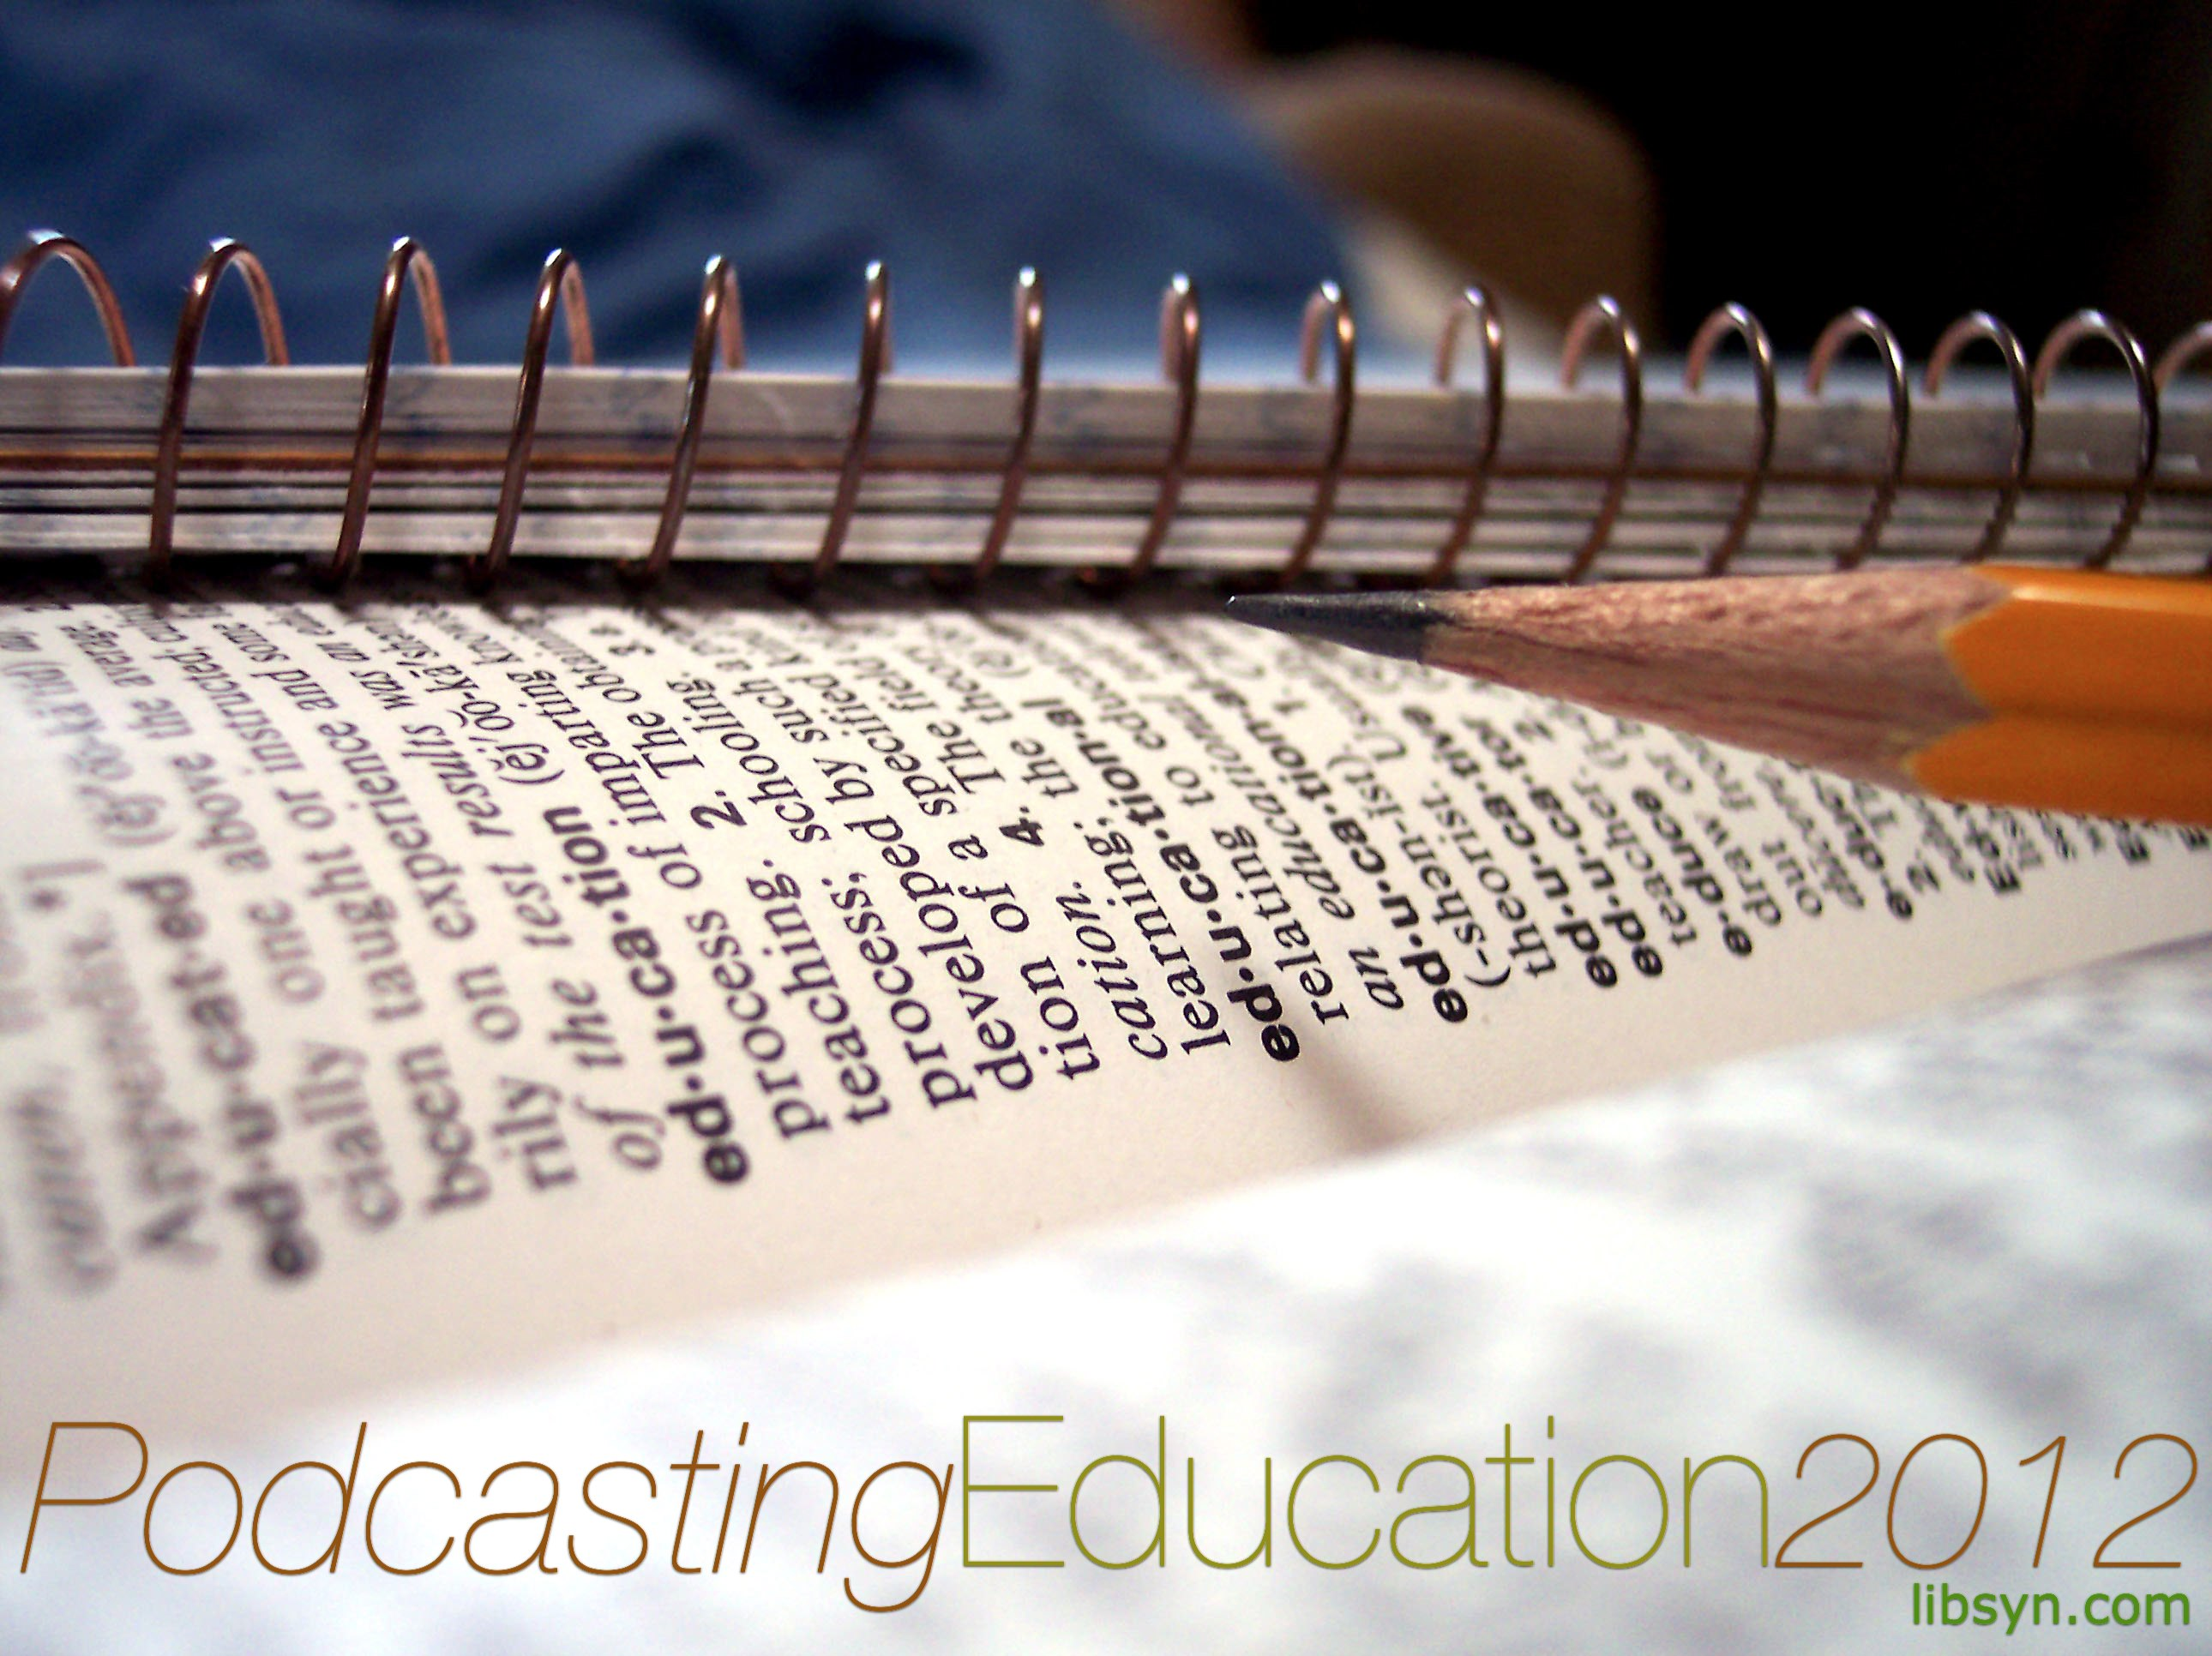 podcasters advice on podcasting for 2012